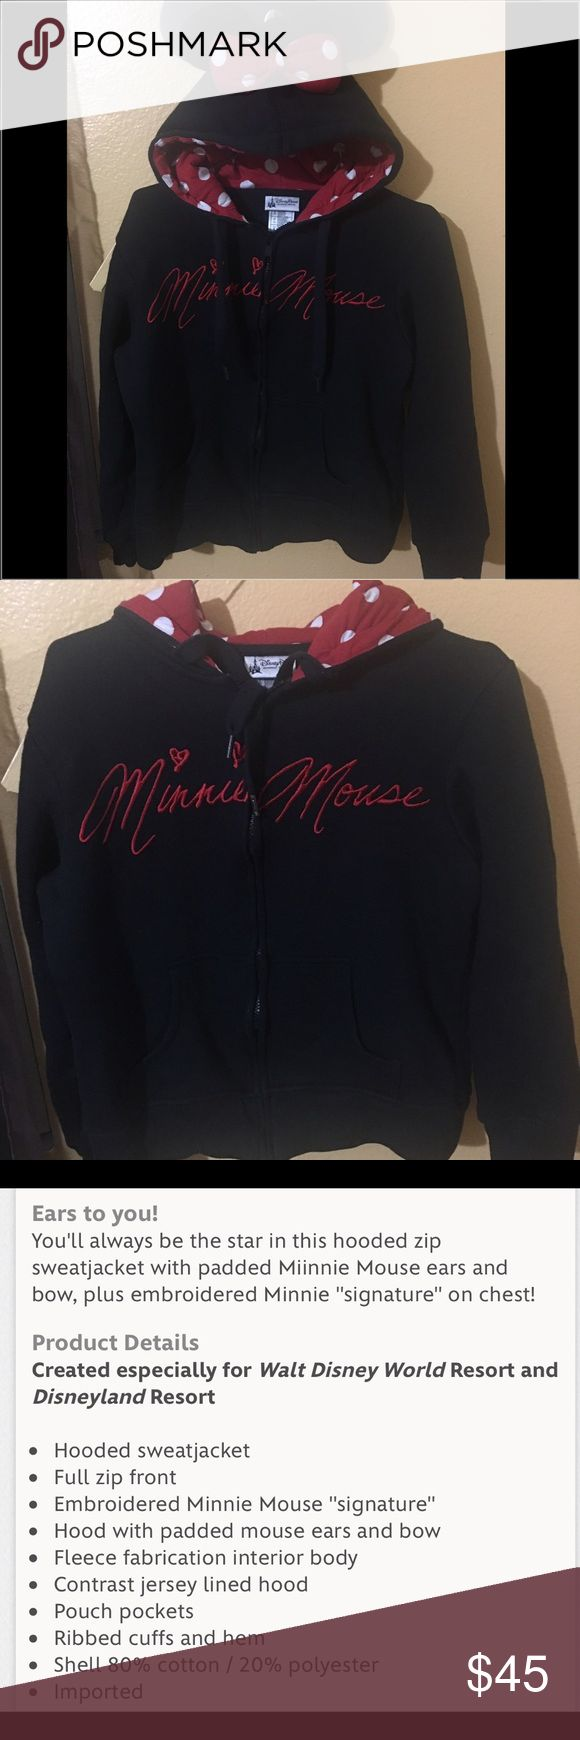 Minnie Mouse Ears Sweater Refer to 3rd picture for full description.  Used twice only.  Purchased at Disneyland...the perks of having a Disney yearly pass ❤️ open to offers. Sweaters